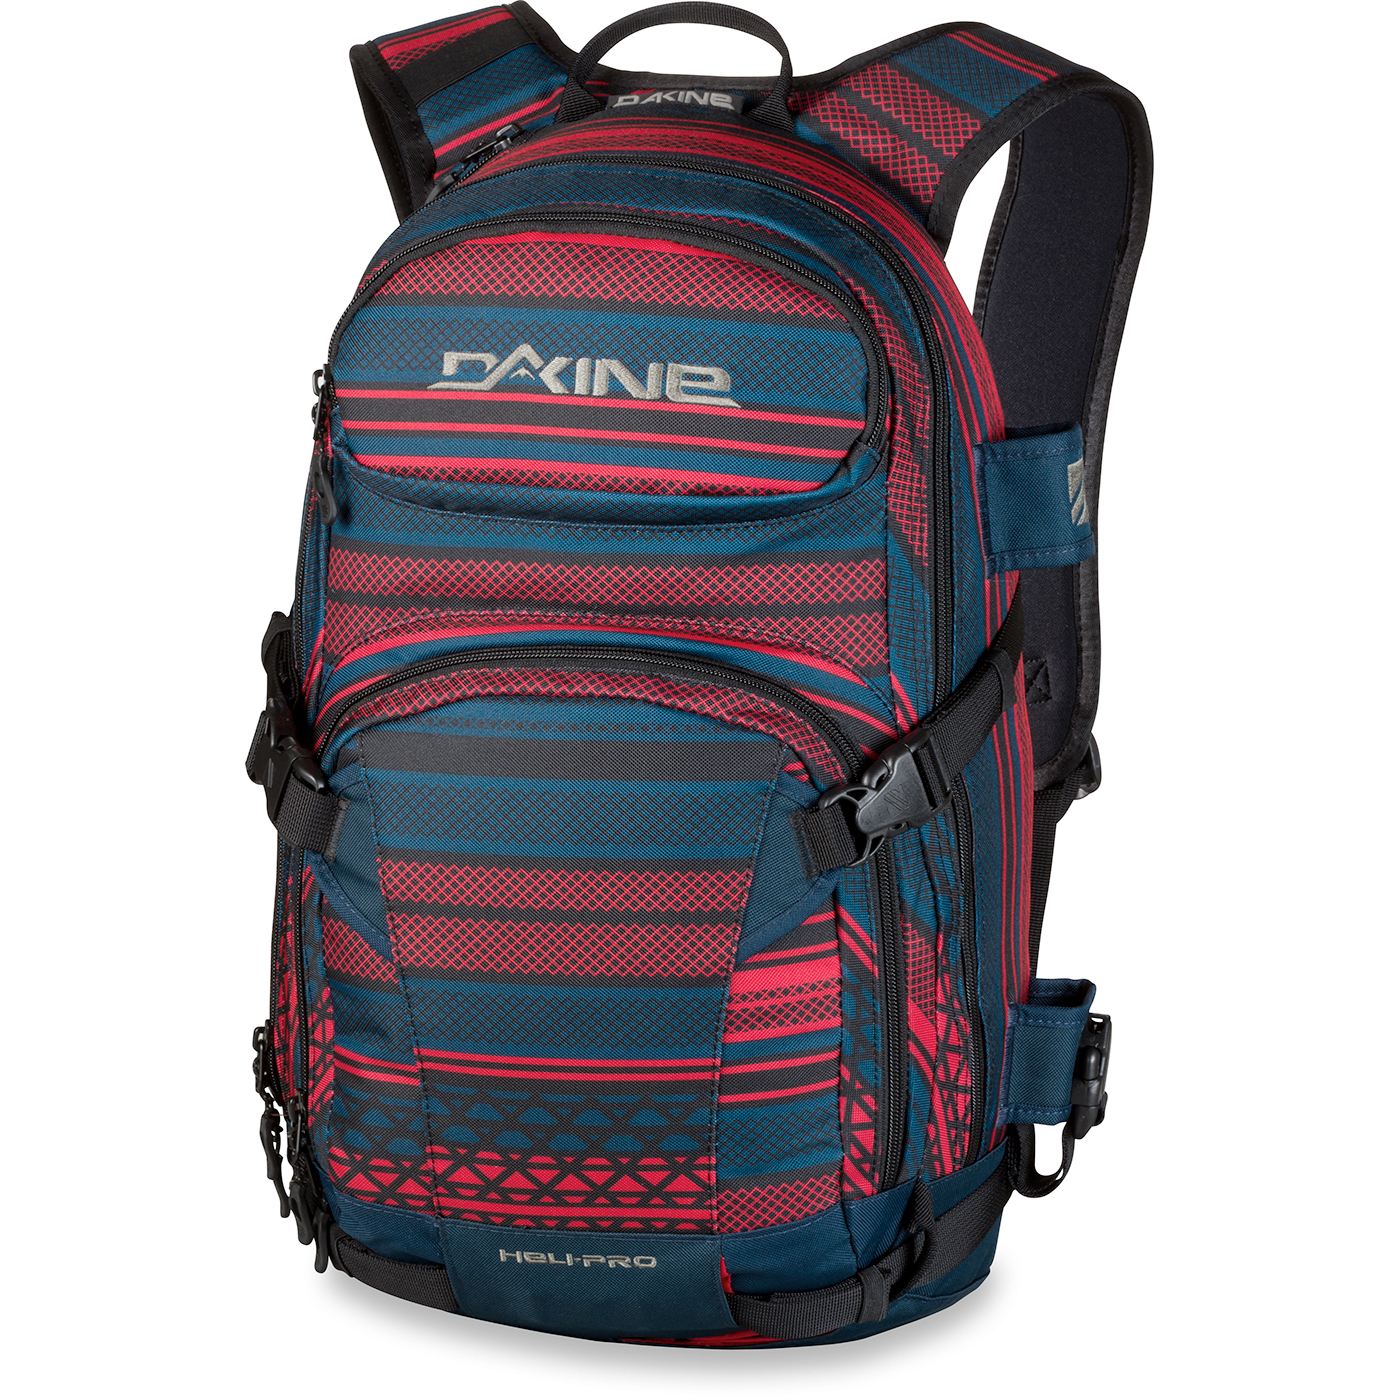 dakine heli pro dlx with 231337923946 on 231337923946 besides Dakine Womens Heli Pro DLX Snow Backpack 18L Highland WCamelbak  64215 also Search in addition Dakine Heli Pro 20l Gifford likewise Shopzilla emsrc pc product color pup e 16 pup id 434029033436.